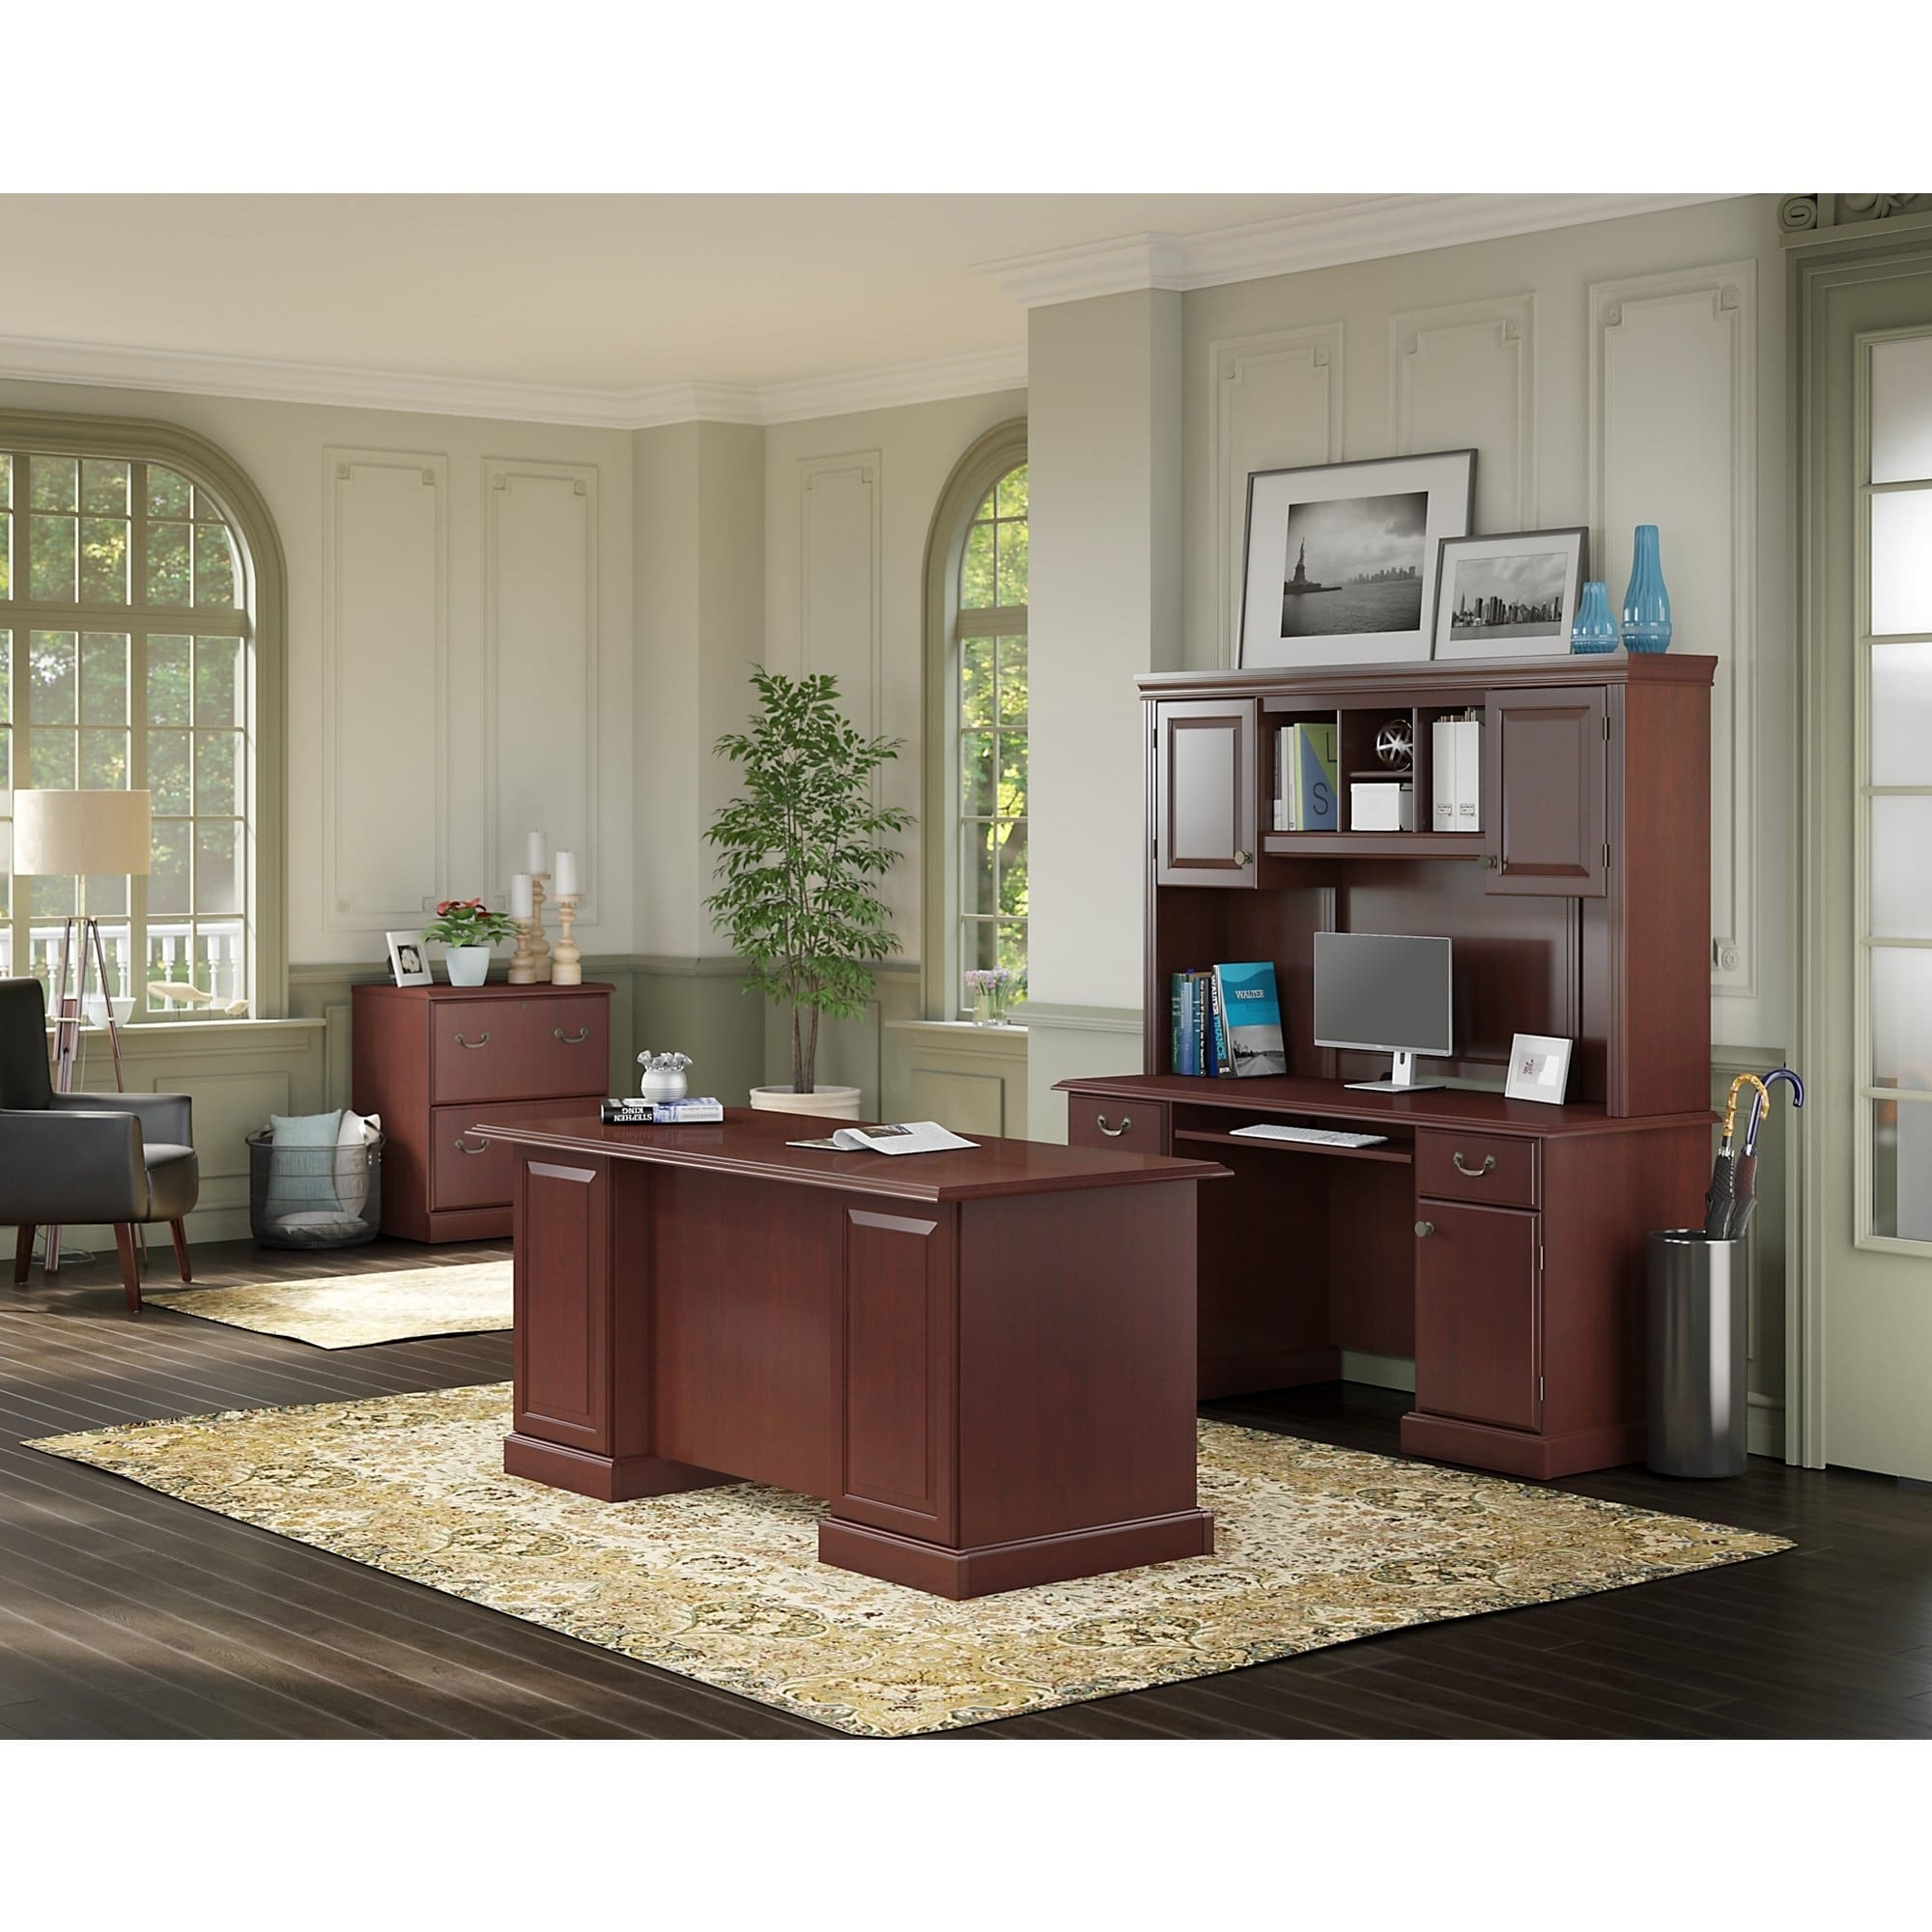 Kathy Ireland By Bush Kathy Ireland® Office By Bush Furniture Bennington  Manageru0027s Desk, Credenza